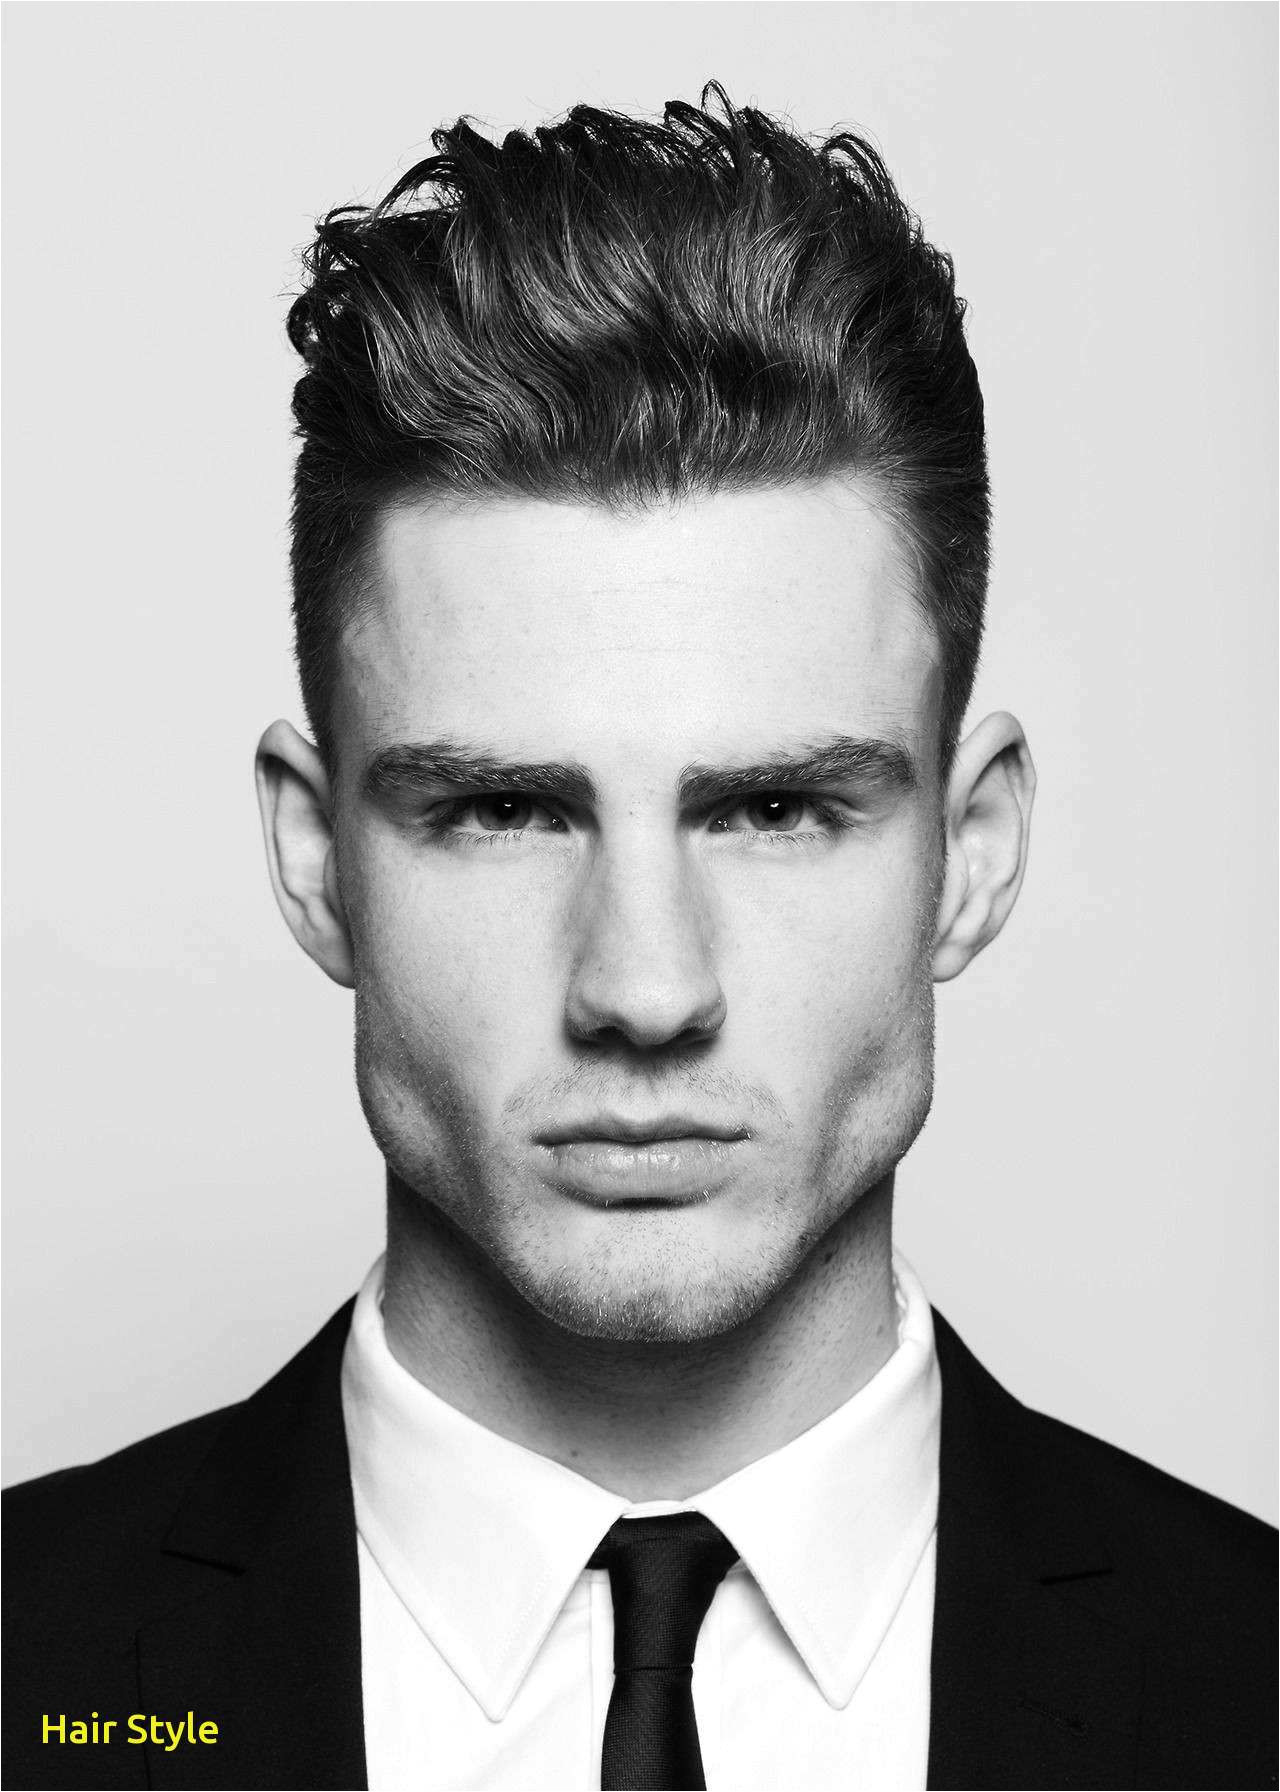 hairstyles for school lovely hairstyles 90s elegant hairstyles men 0d bright lights big color